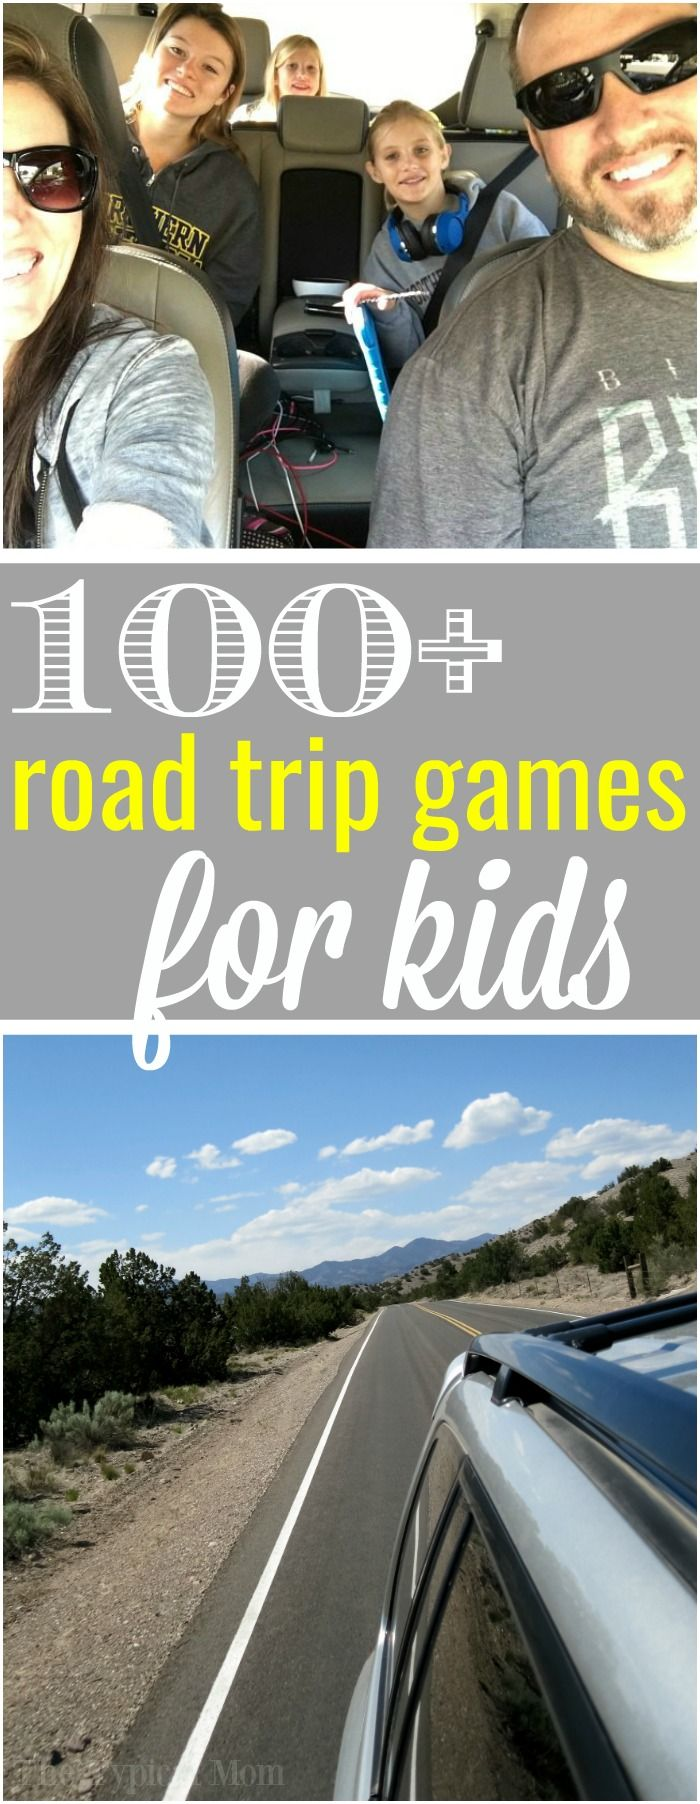 100 road trip games for kids to avoid are we there yet